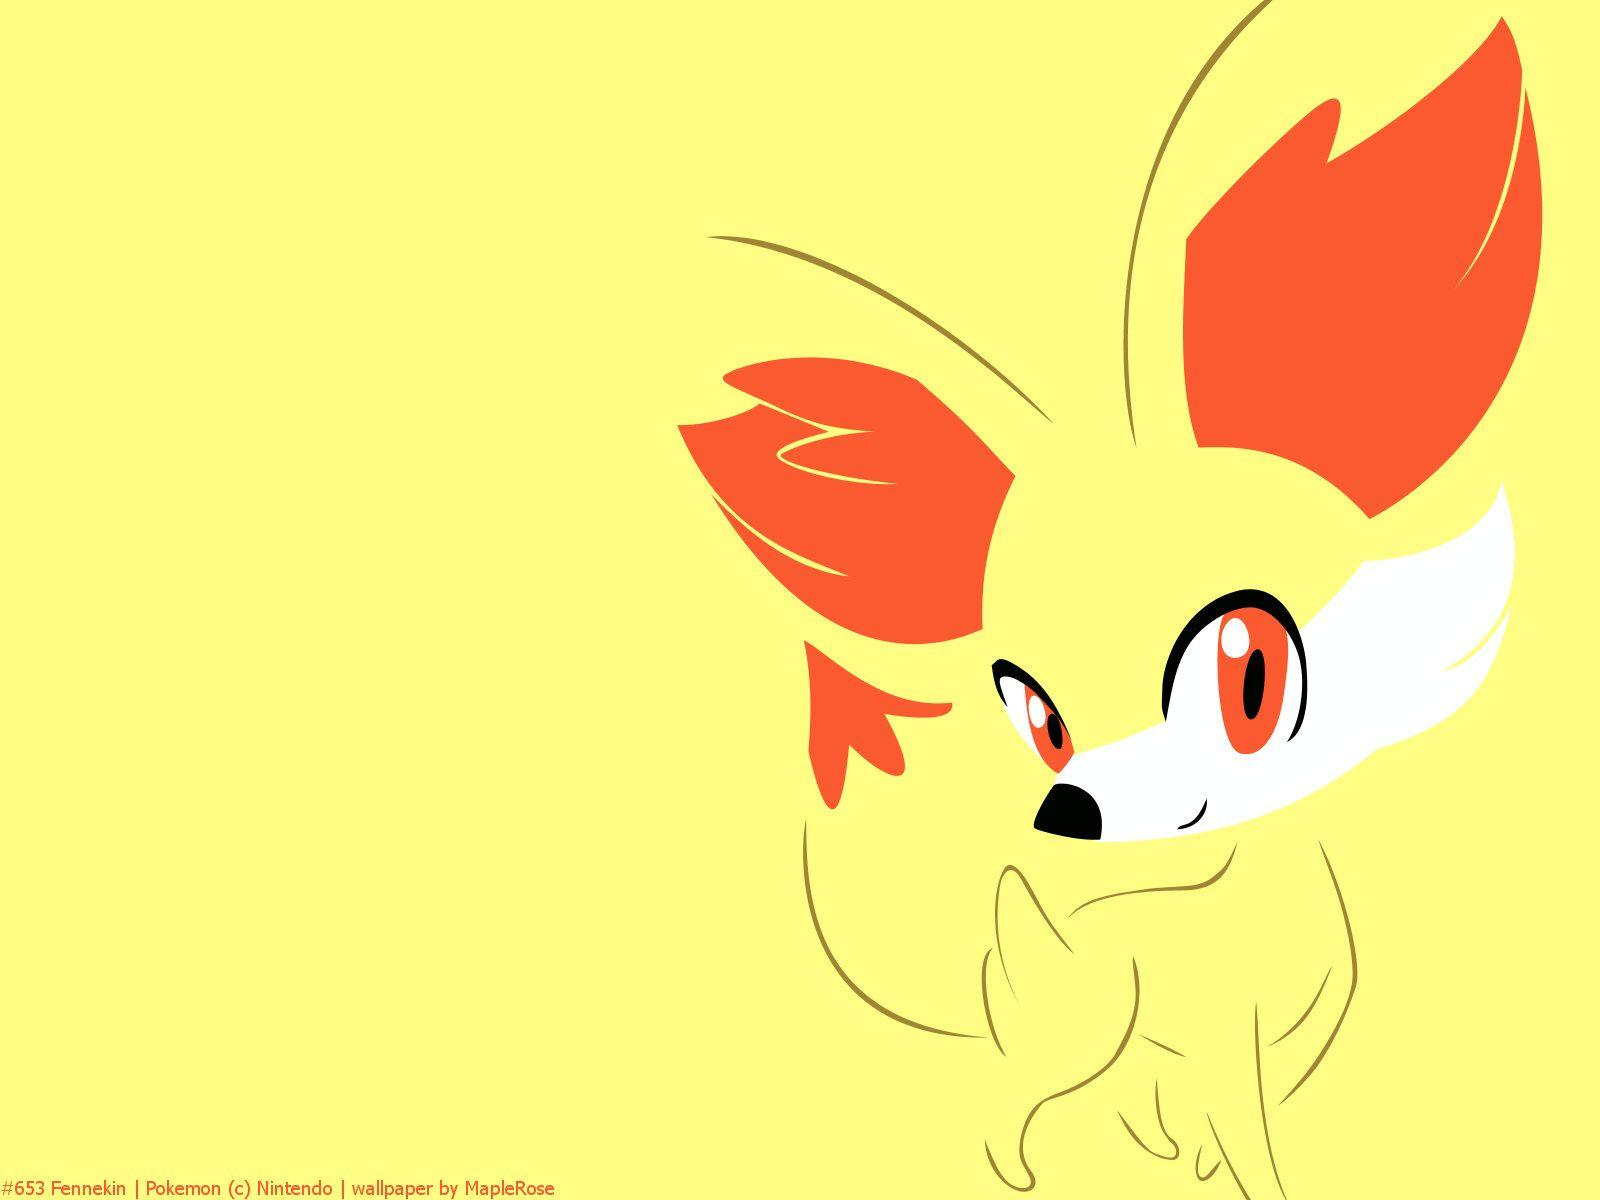 Fennekin images Fennekin Wallpaper HD wallpaper and background ...